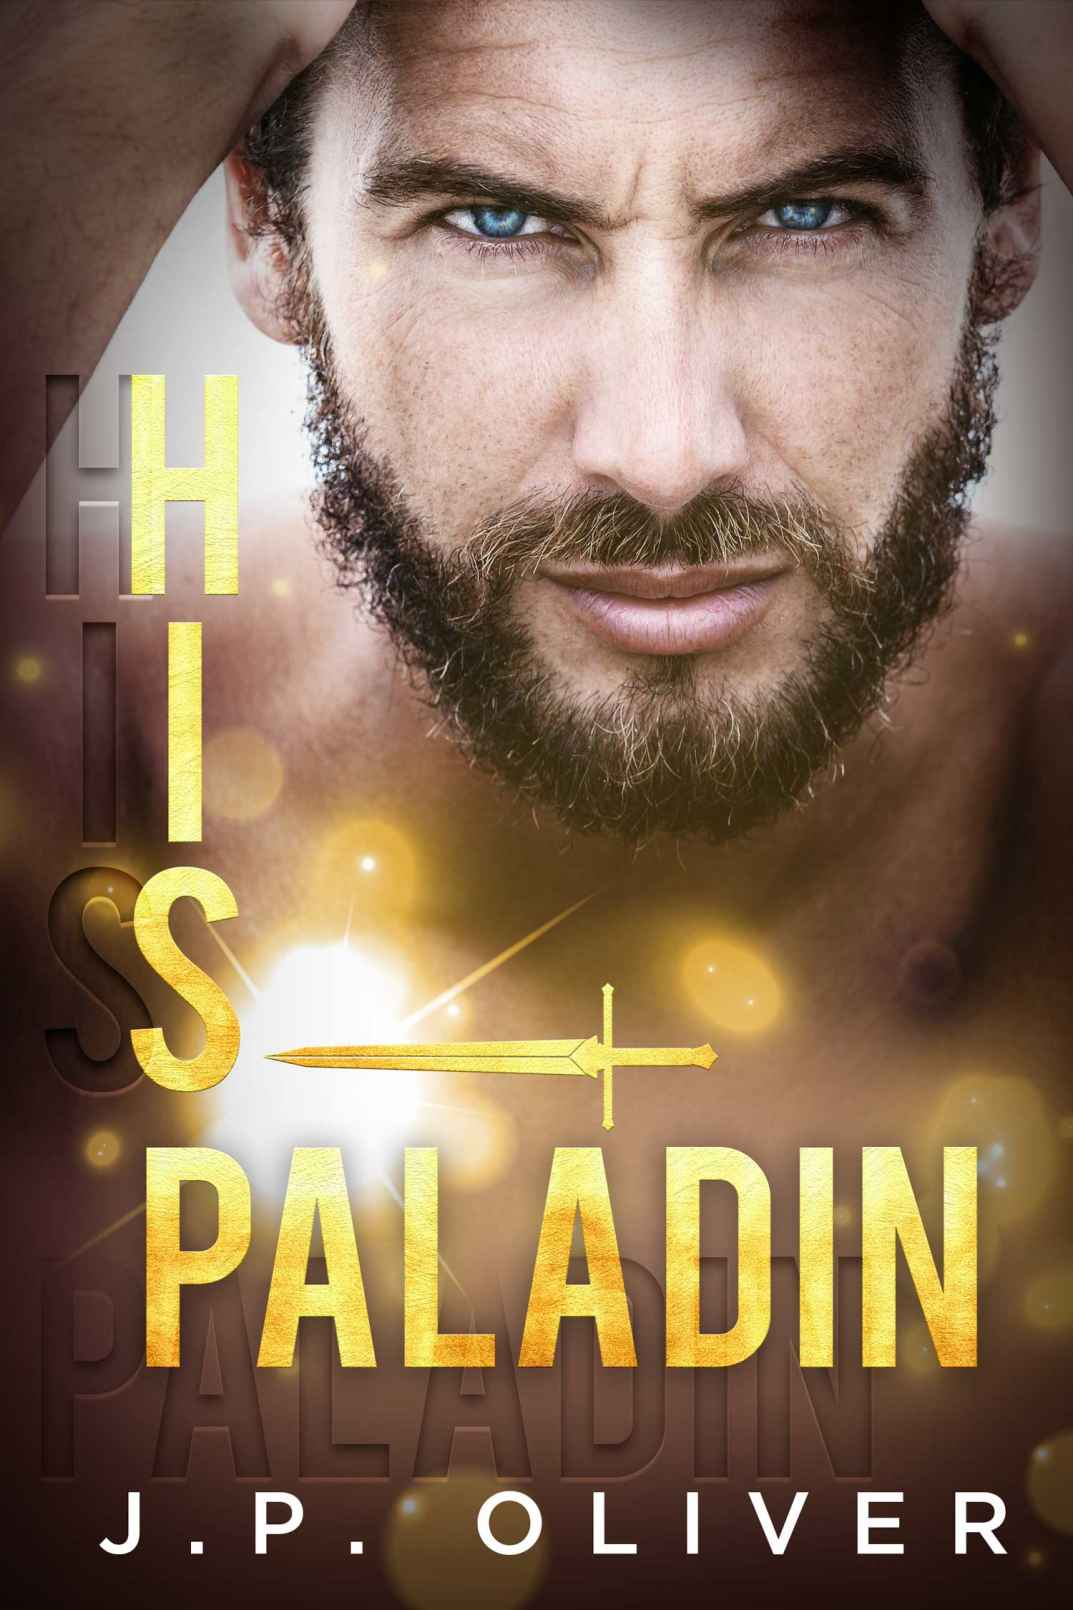 His Paladin cover image